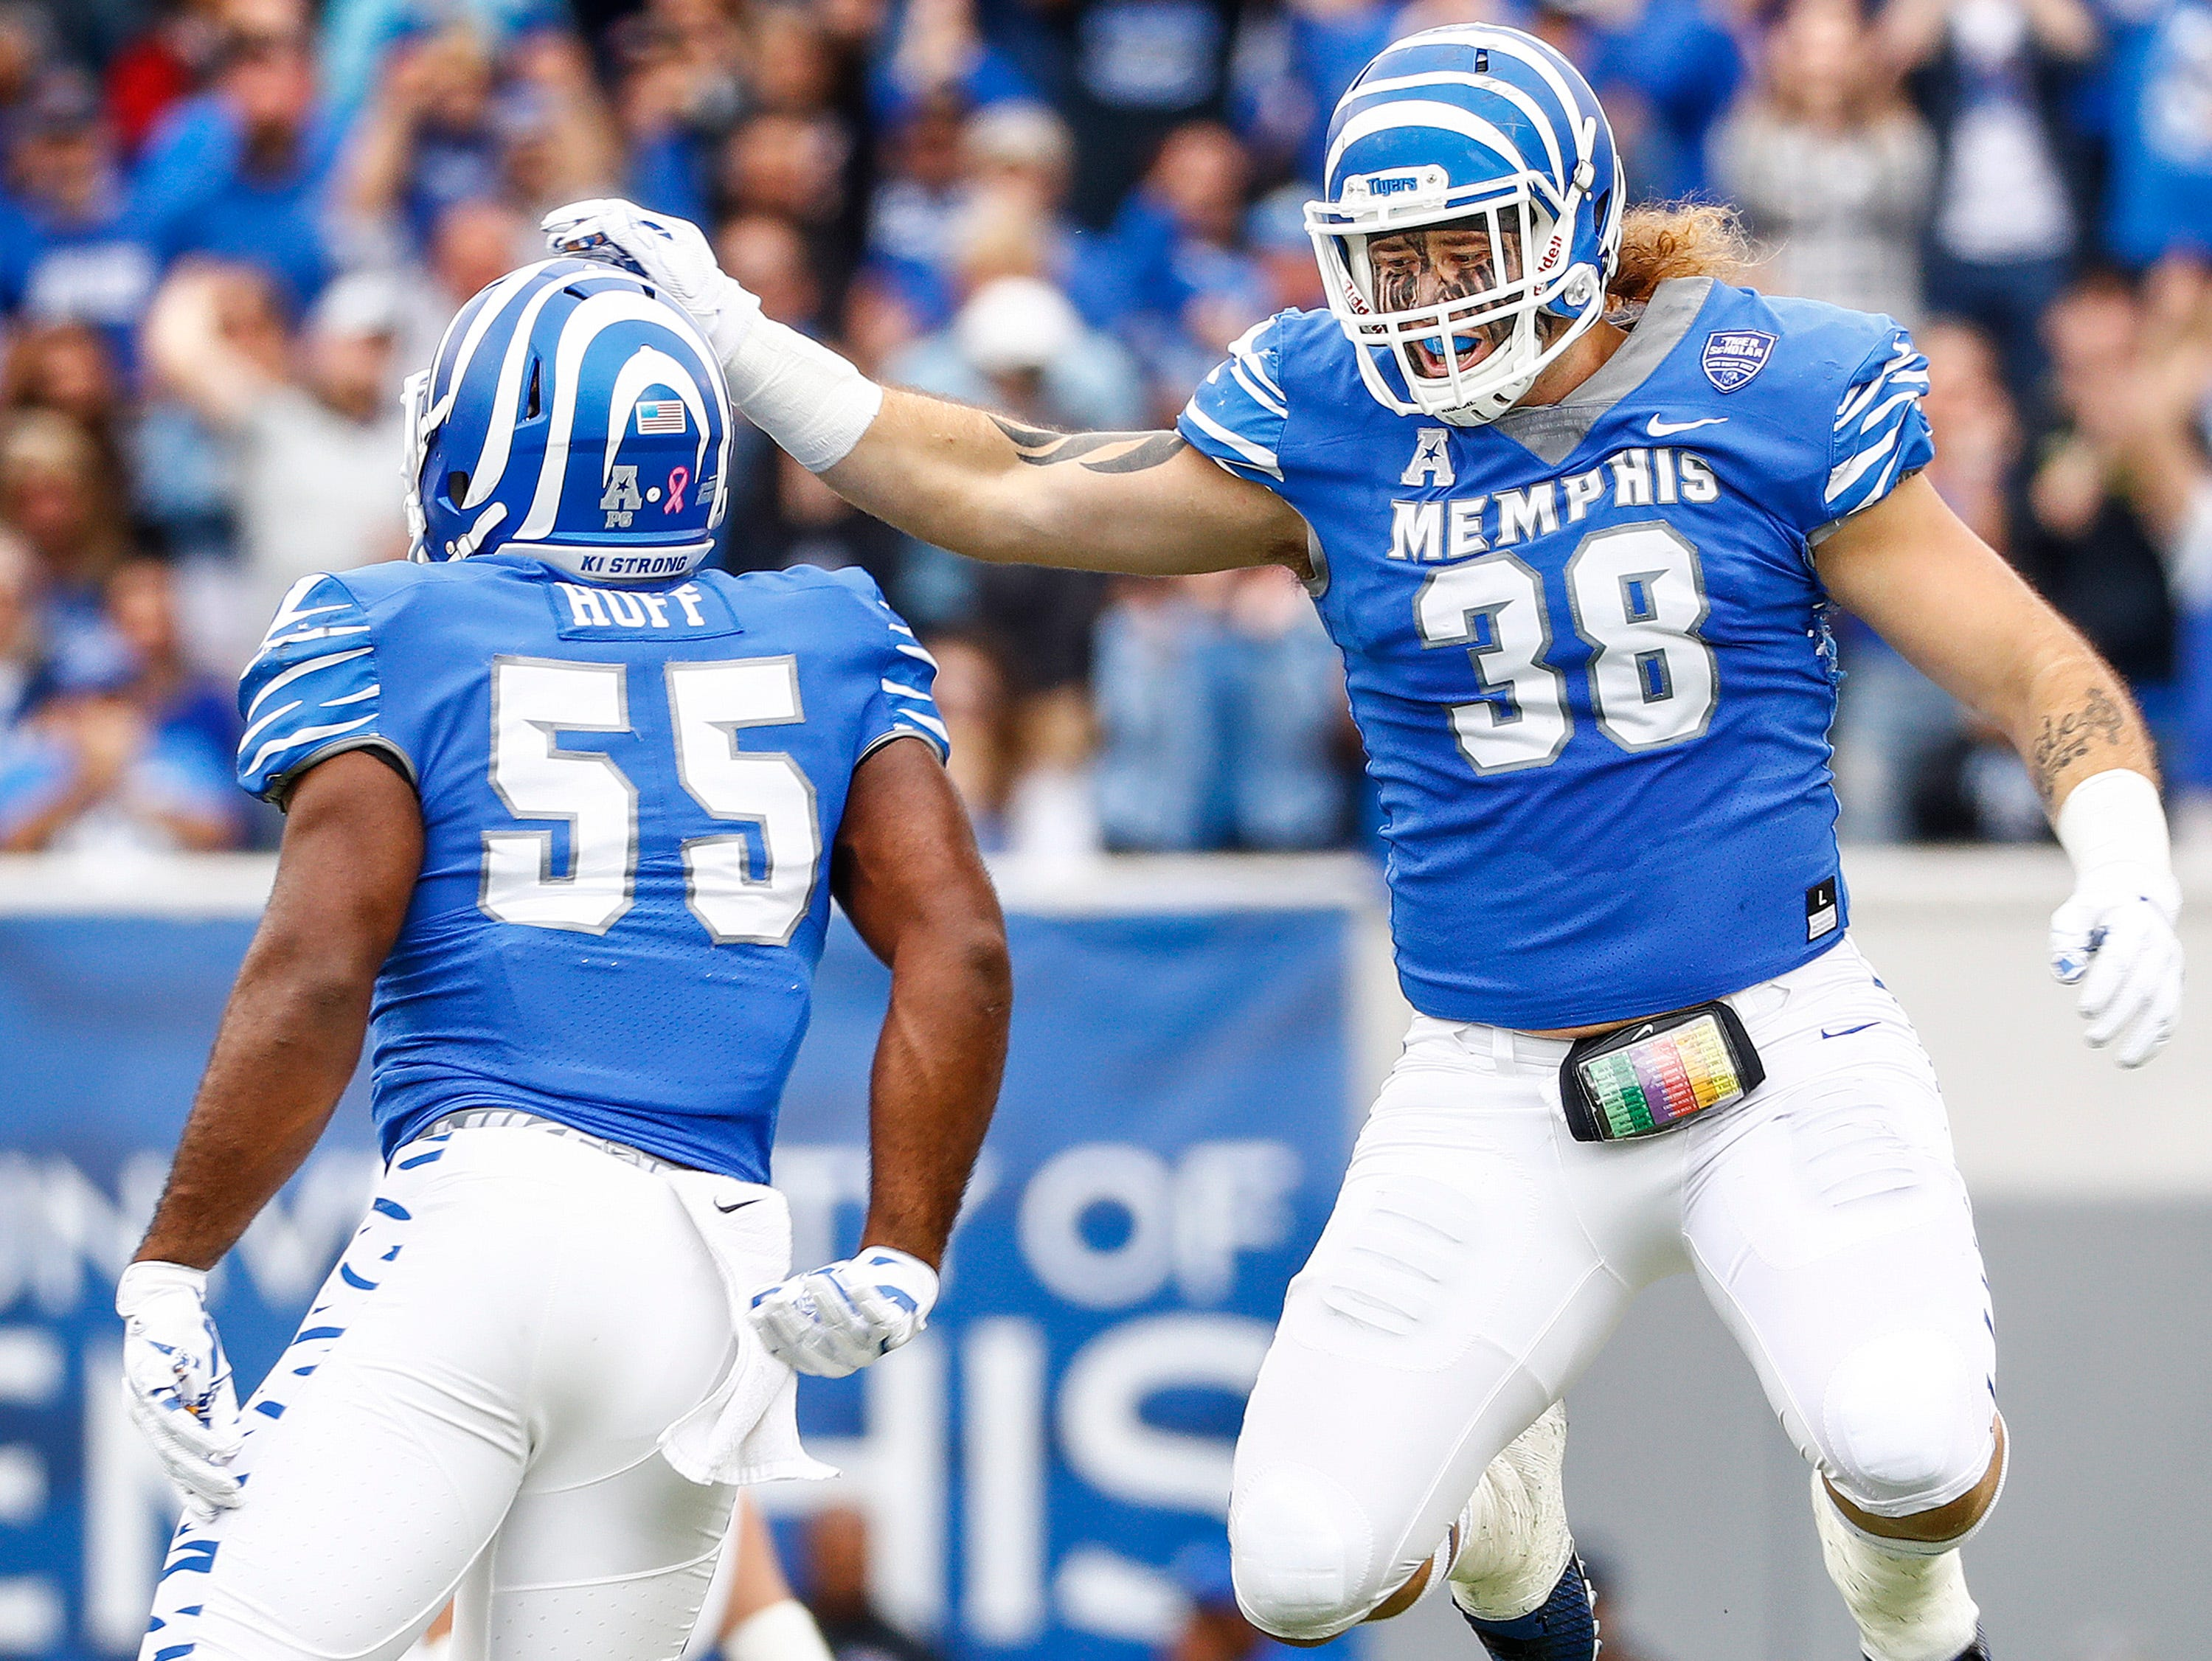 Memphis teammates Bryce Huff (left) and Jonathan Wilson celebrate a defense stop against Central Florida during action in Memphis, Tenn., Saturday, October 13, 2018.